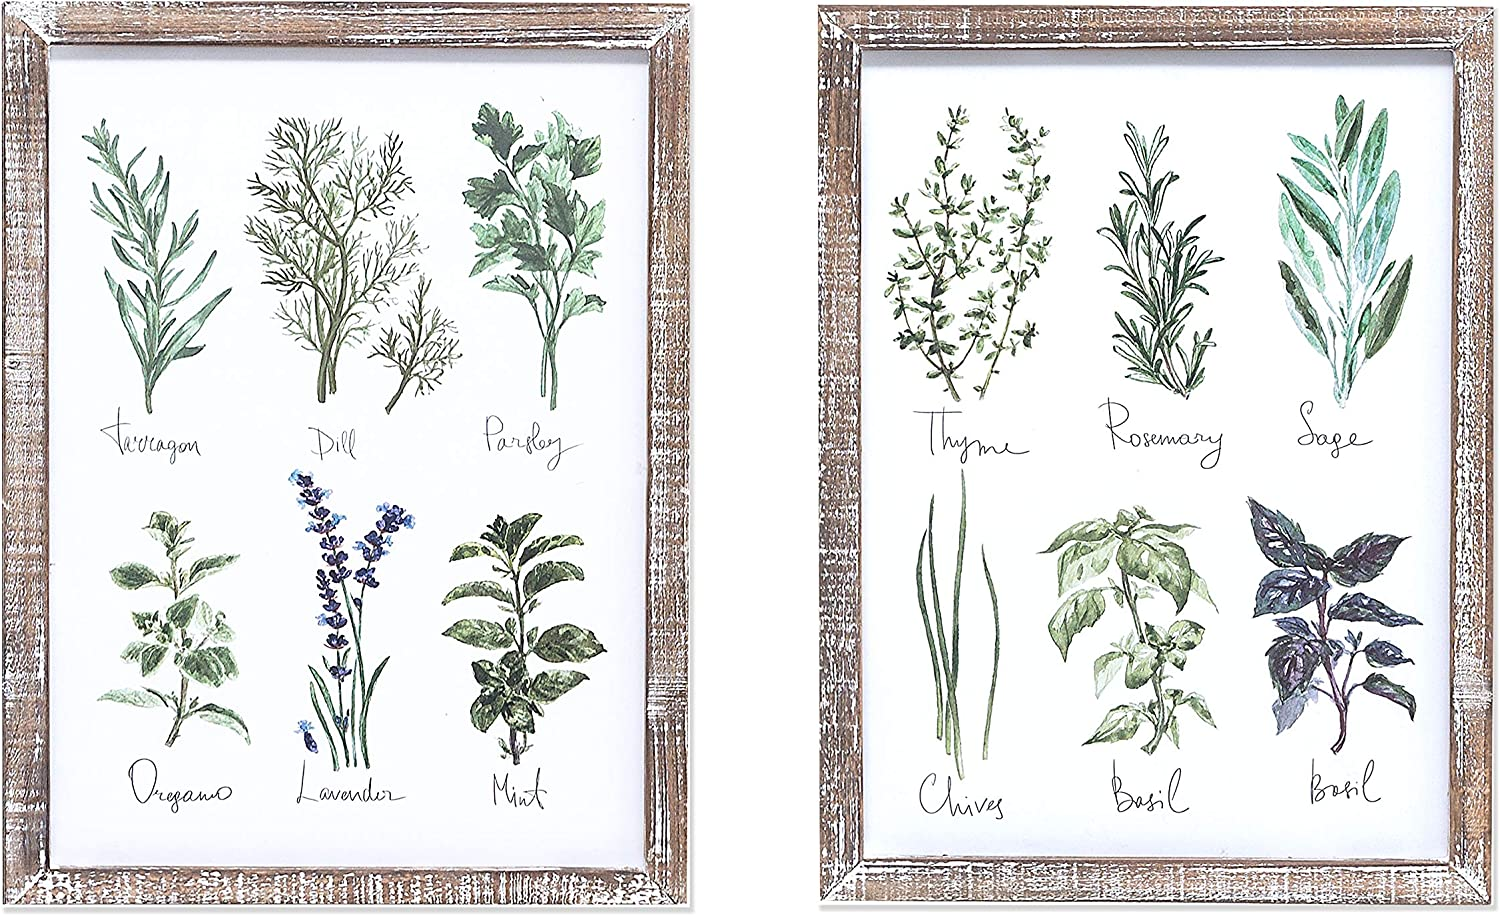 Barnyard Designs Vintage Herb and Framed P Wood All items free shipping Columbus Mall Spices Botanical